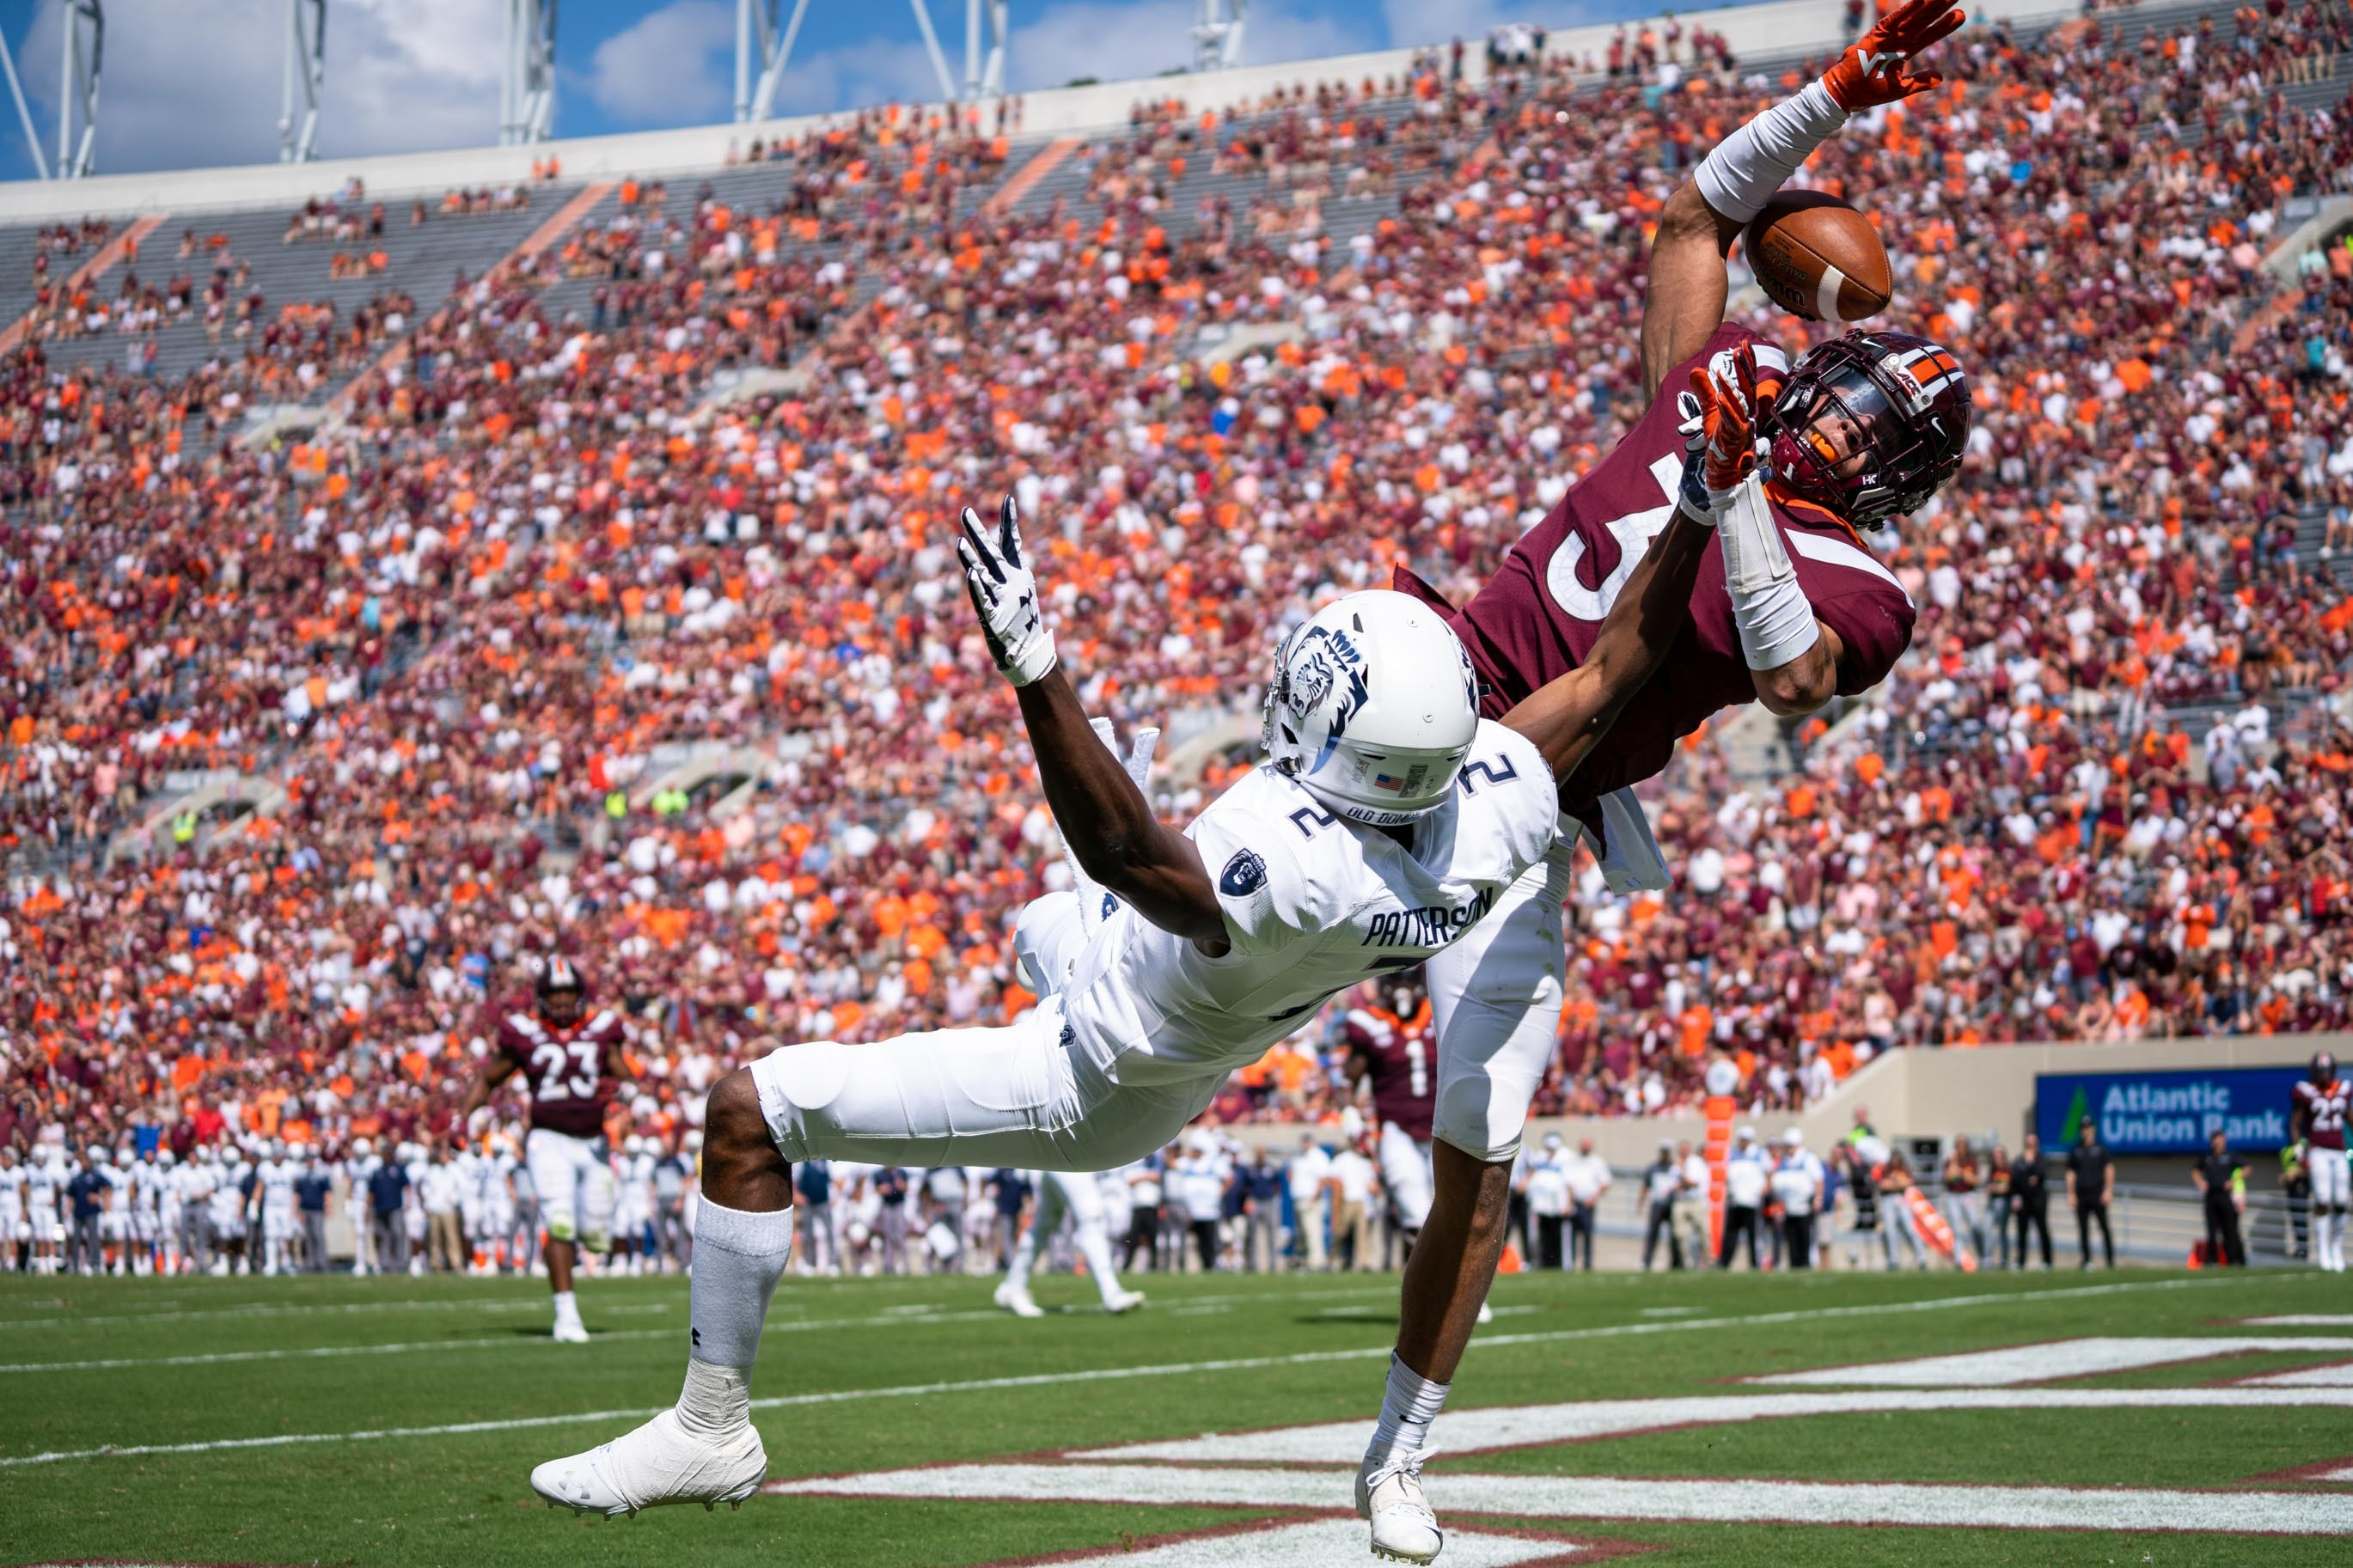 Three Defensive Takeaways From Virginia Tech's 42-35 Win Over Miami